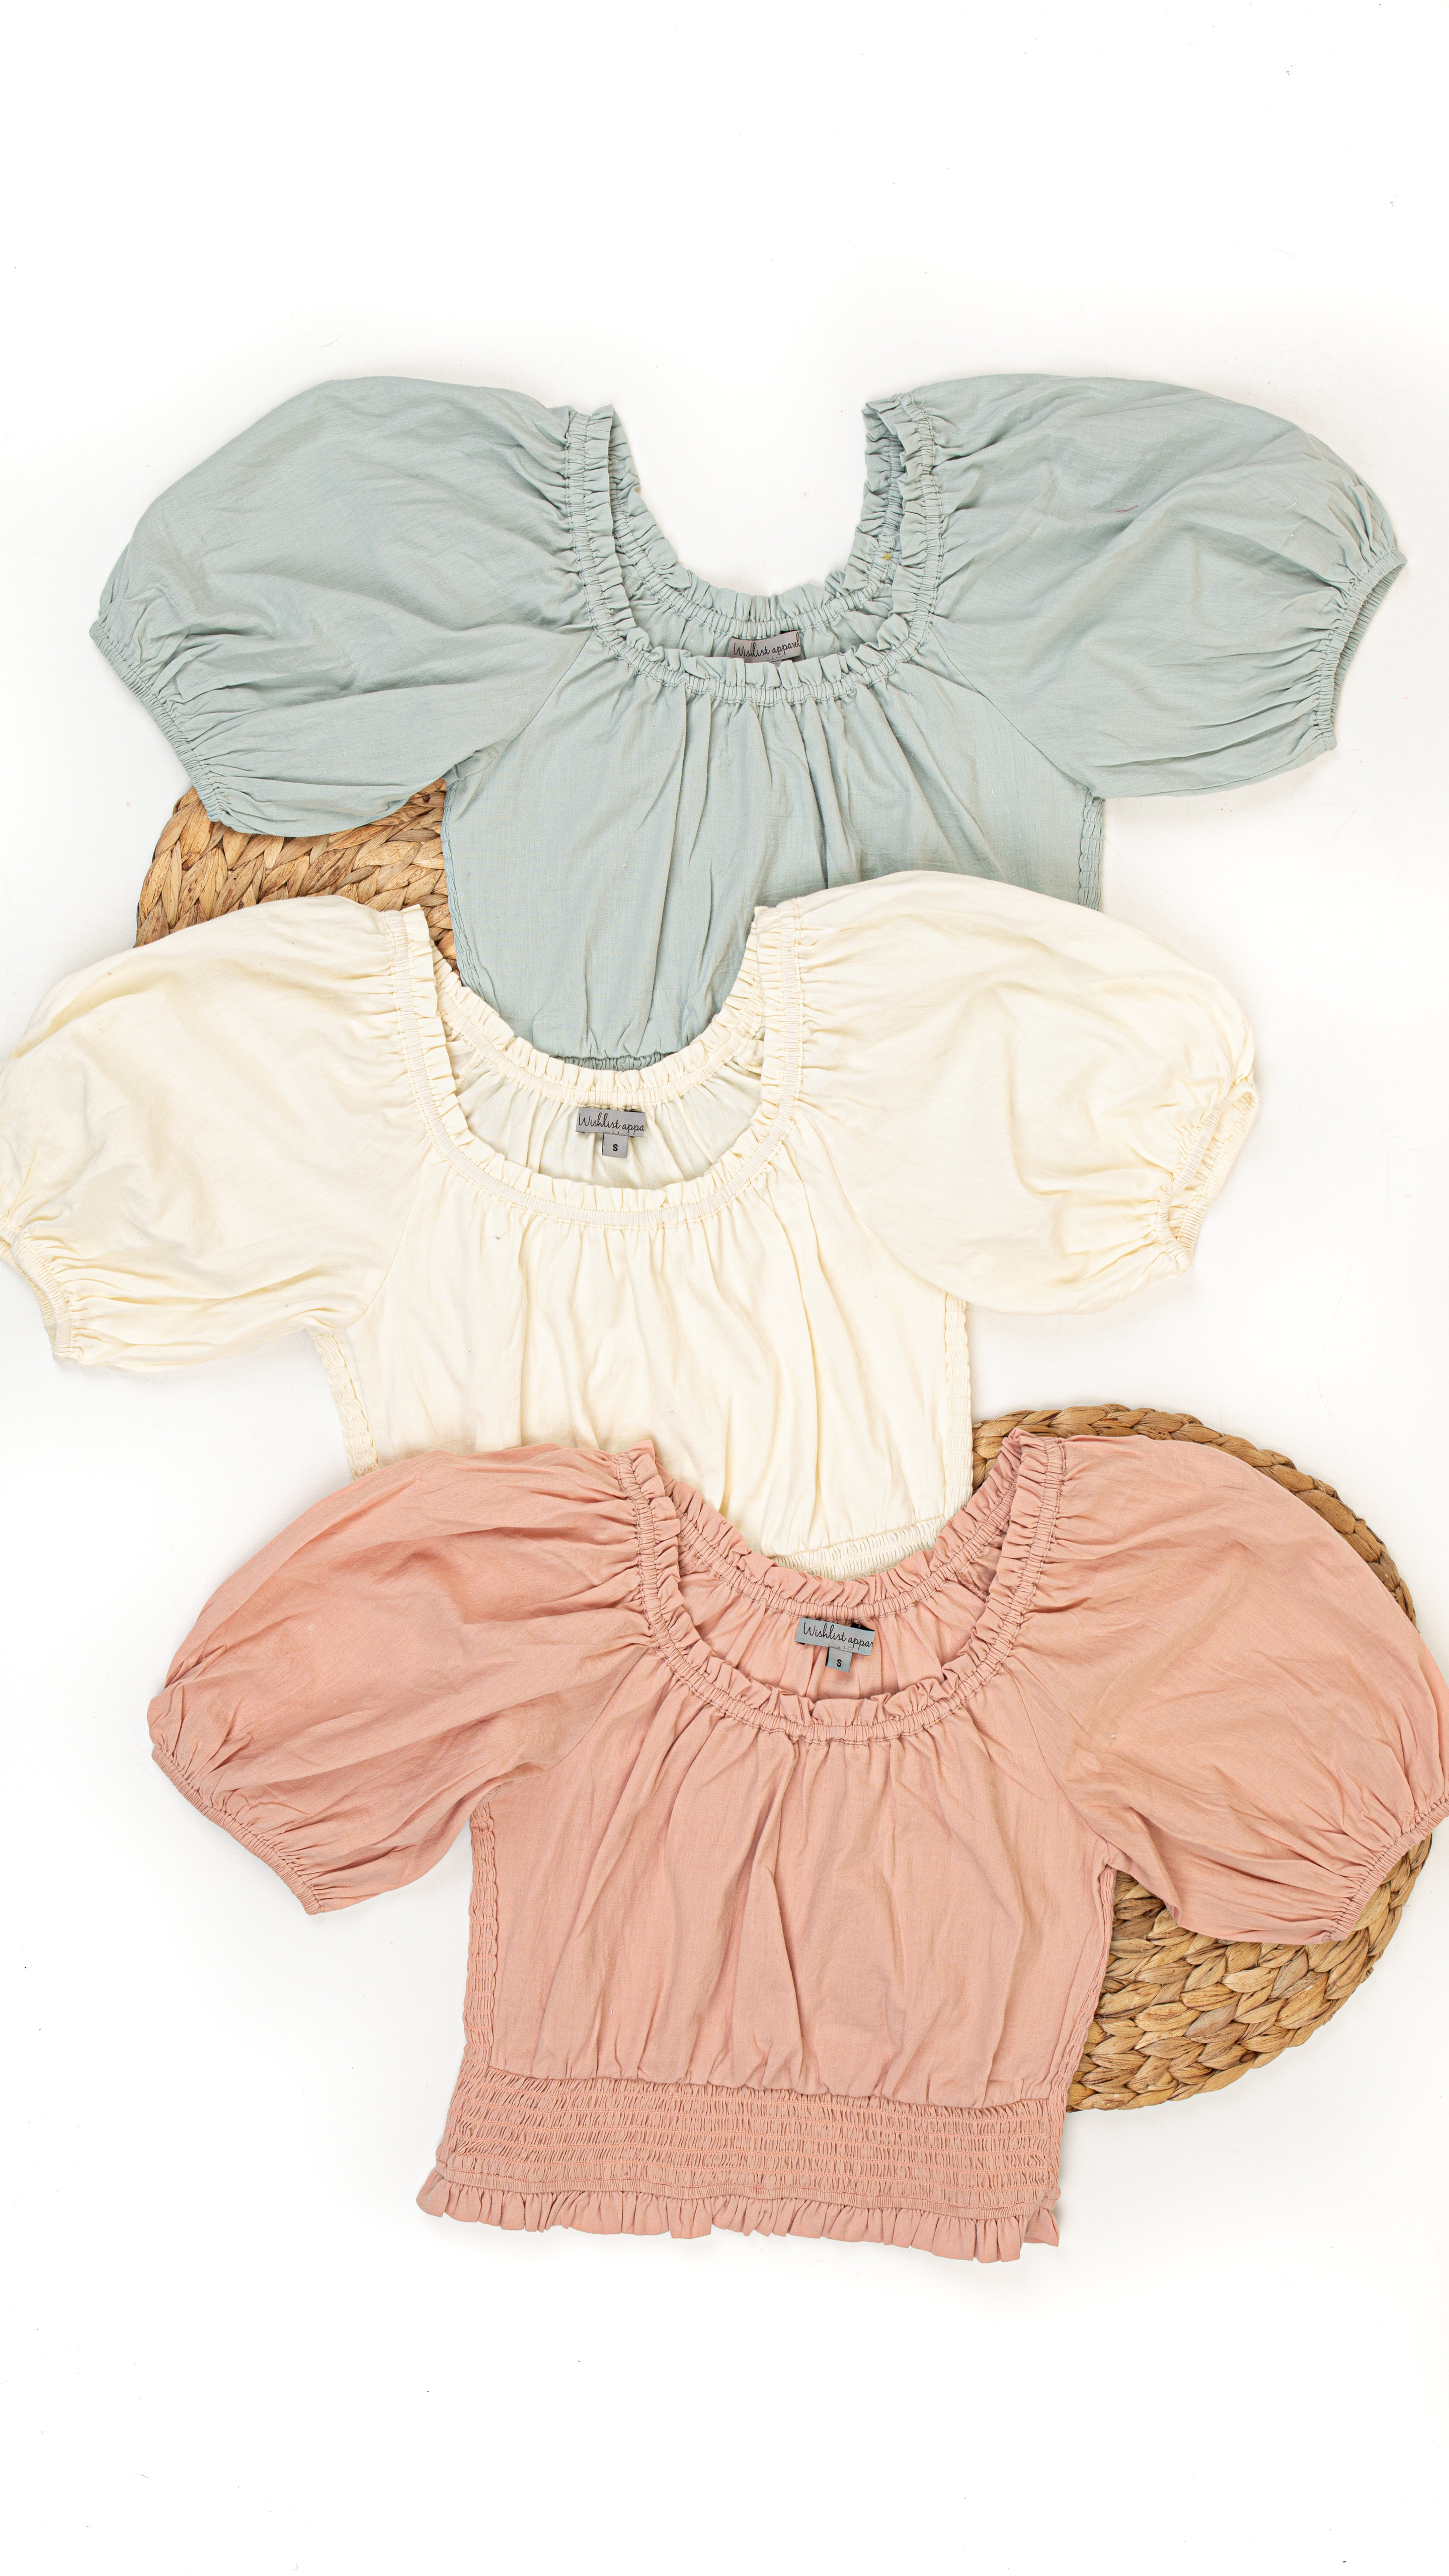 Cream Smocked Crop Top with Short Puffed Sleeves